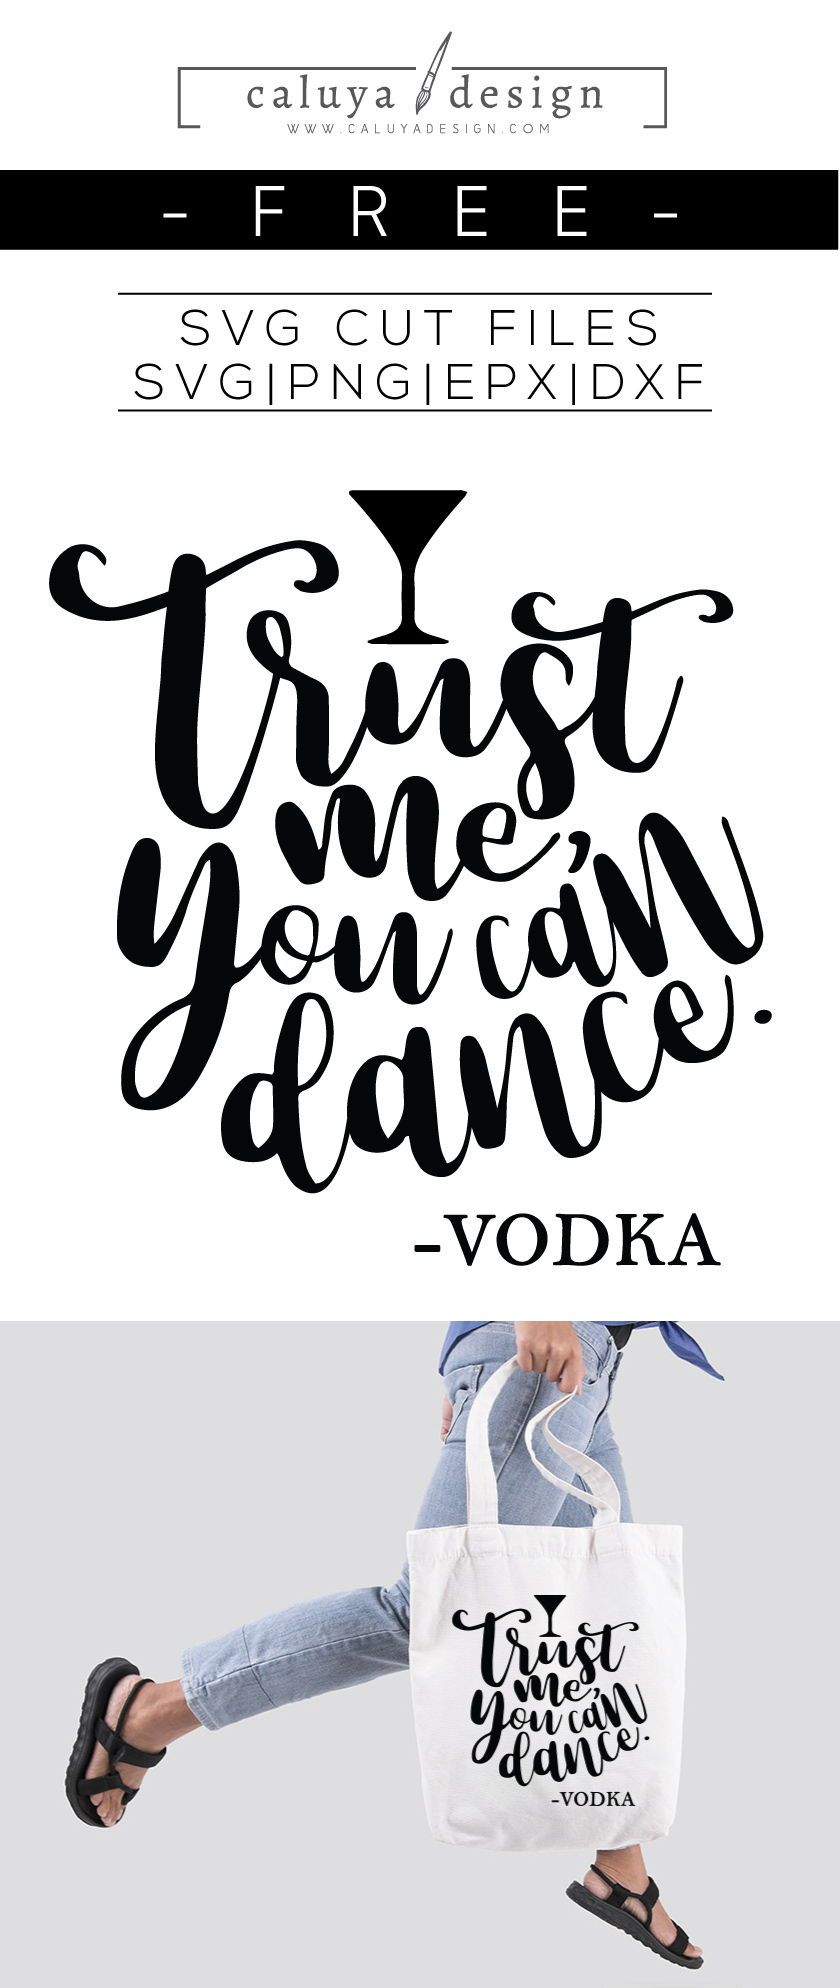 Free Vodka SVG, PNG, EPS & DXF by